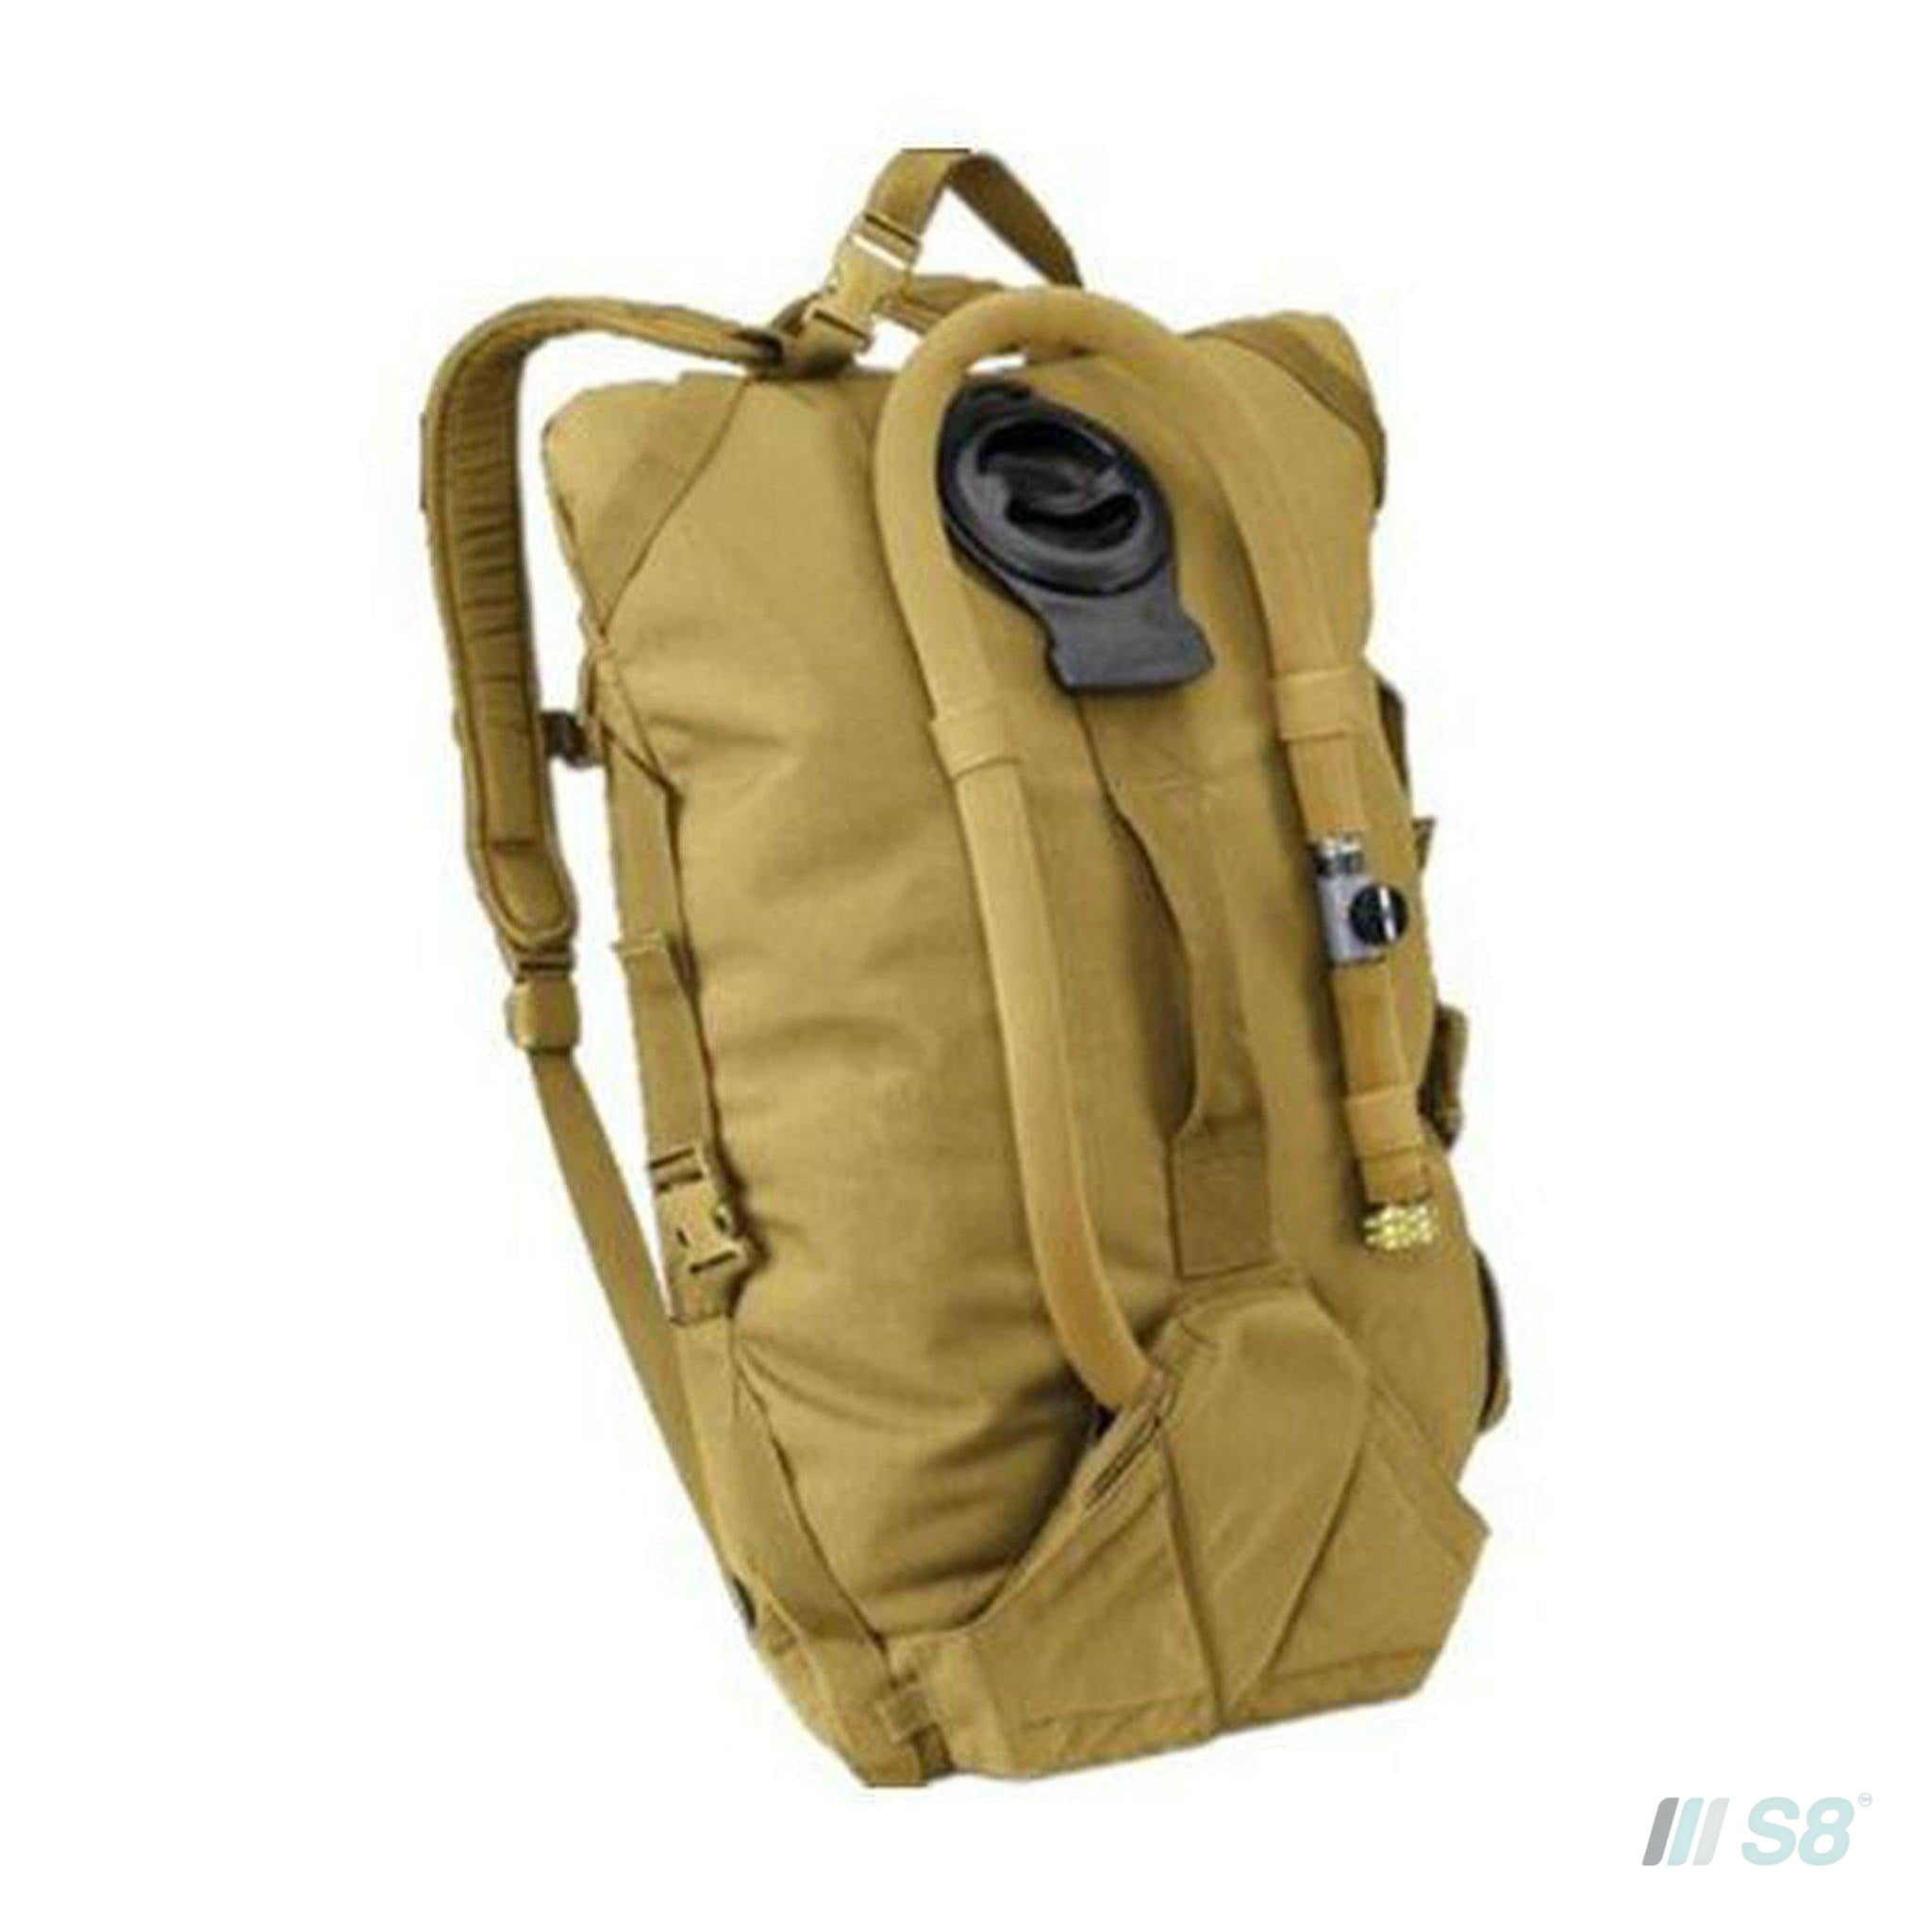 Camelbak Squadbak 25L Omega Military Hydration pack - Coyote-Camelbak-S8 Products Group